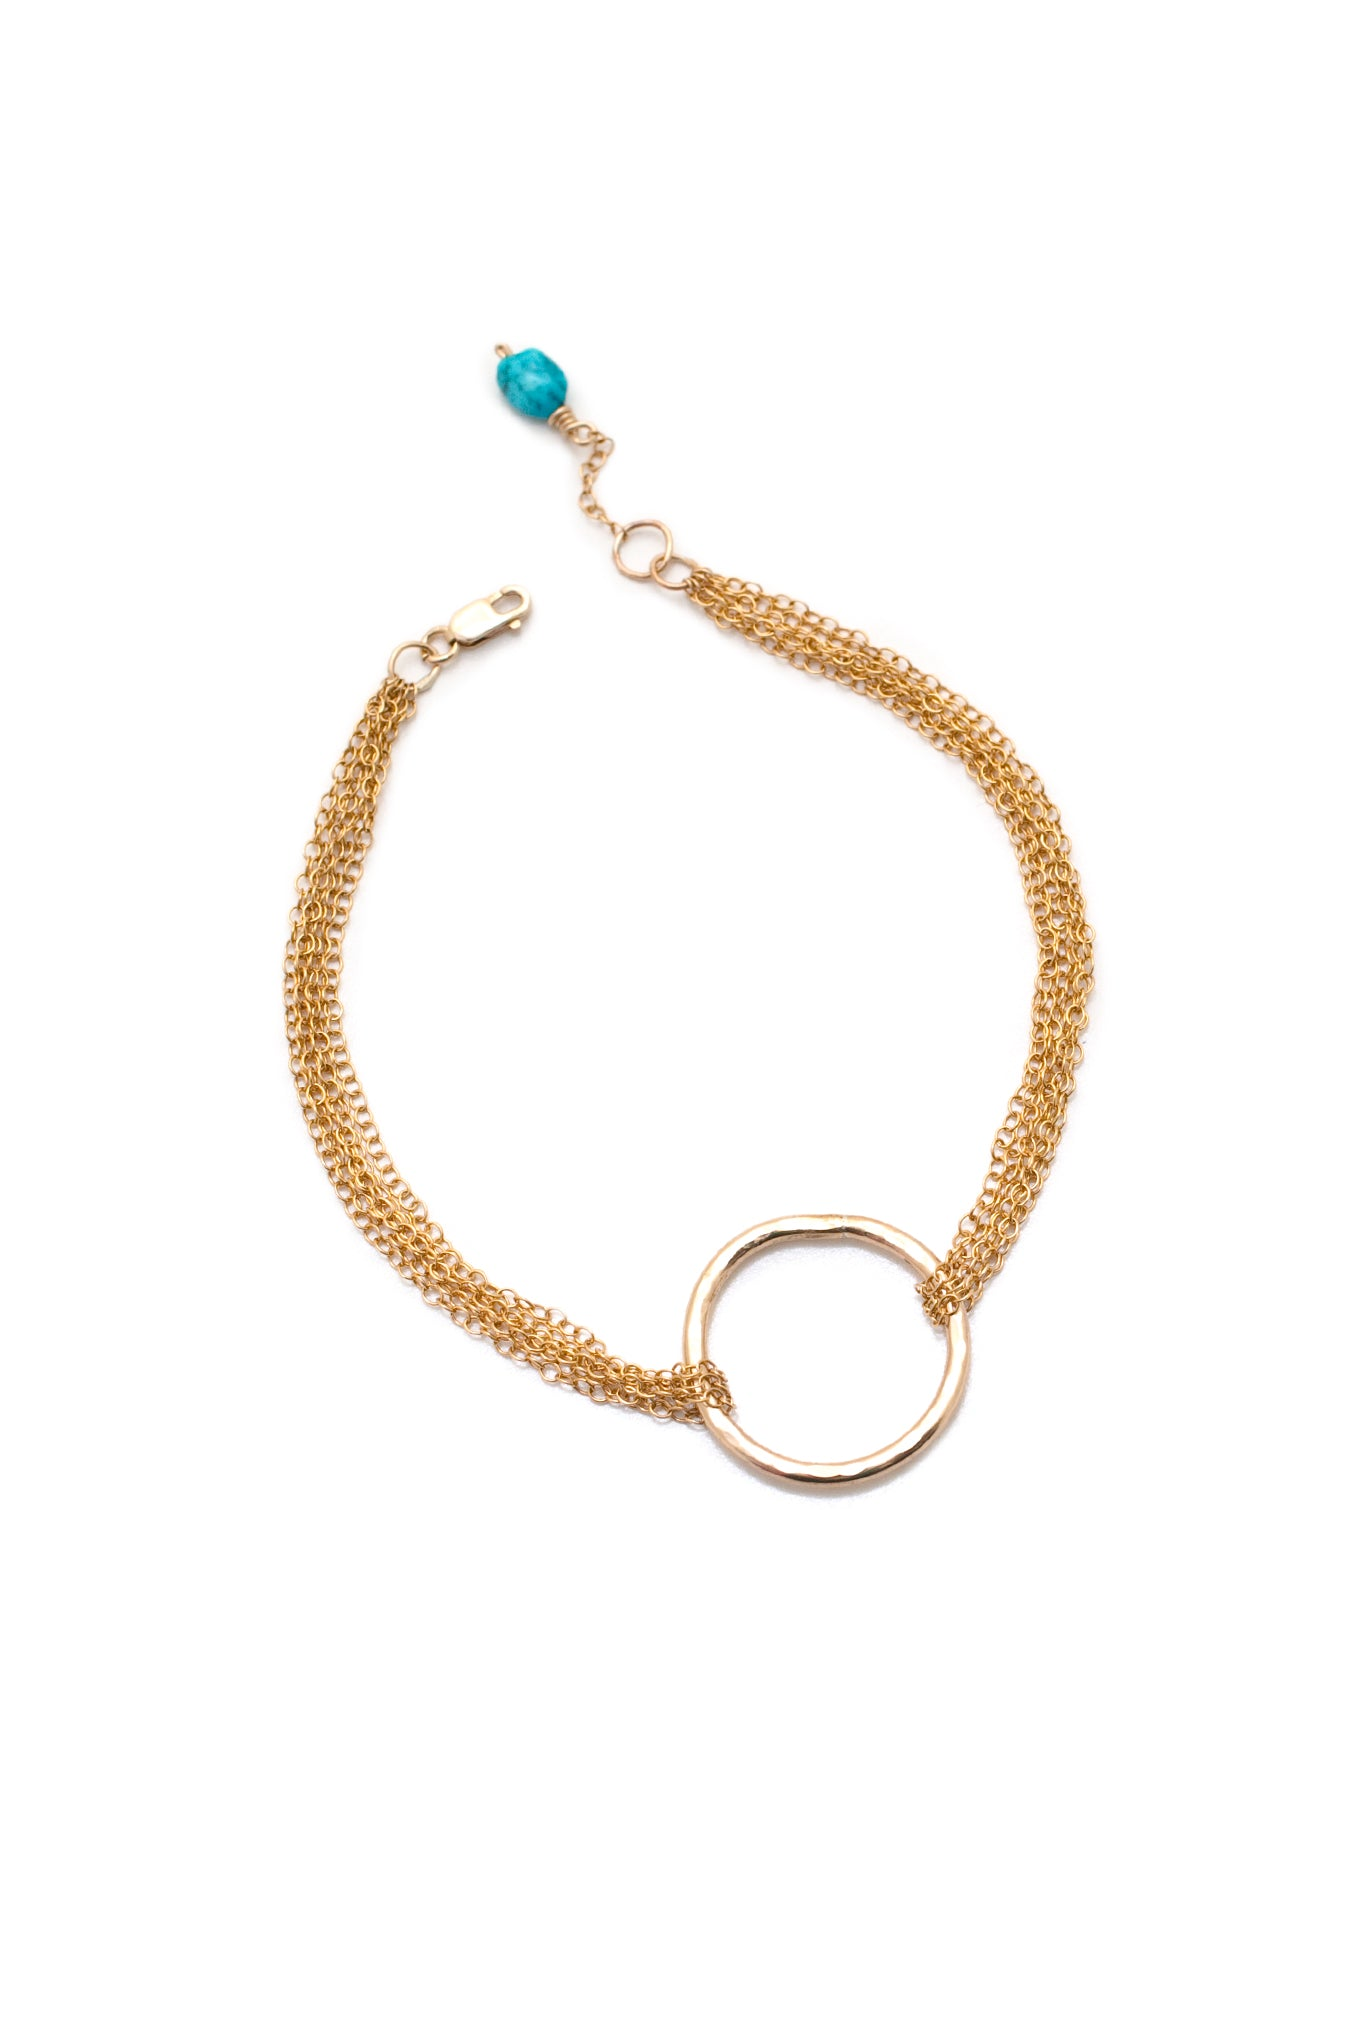 Multistrand Love is all Encompassing Gold Bracelet